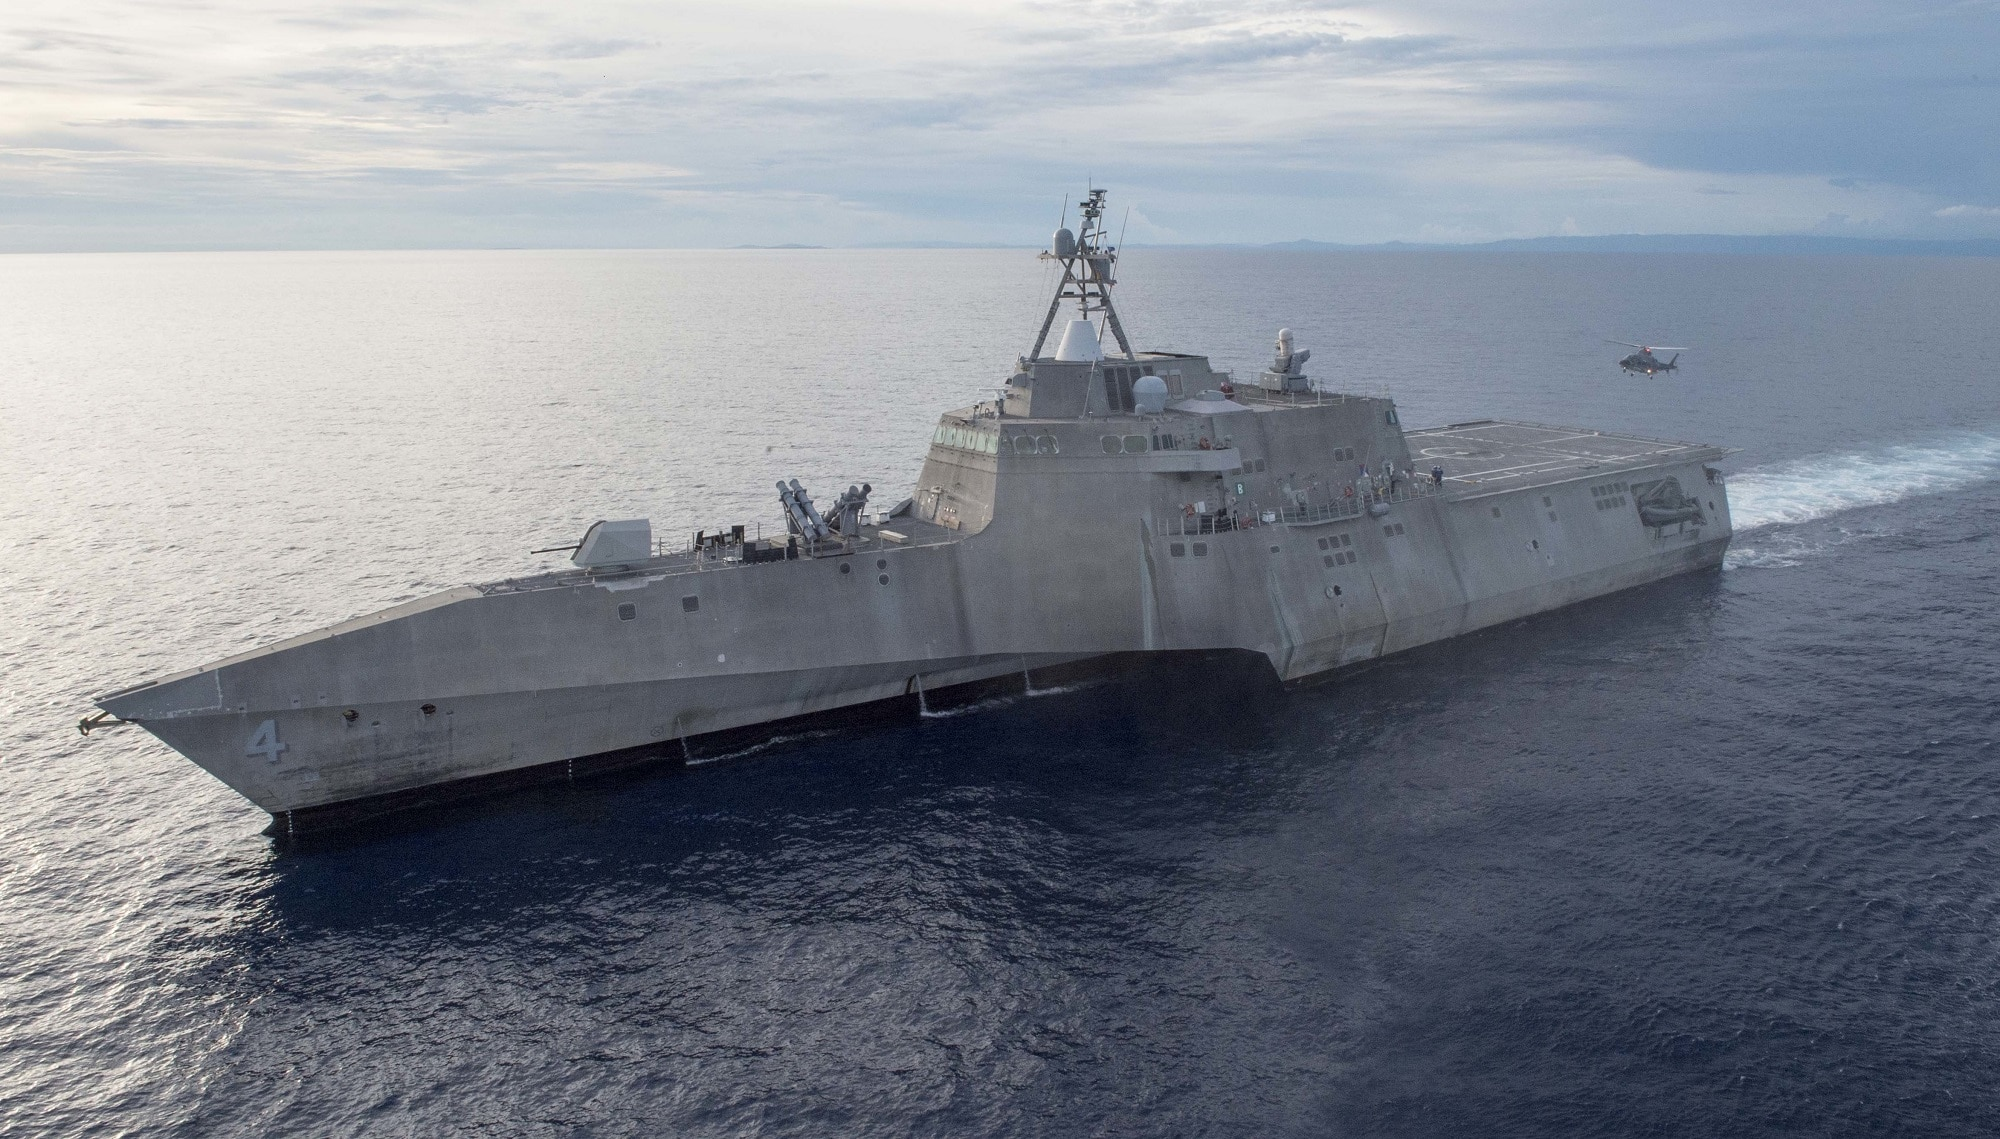 Life support: The Navy's struggle to define an LCS bare minimum